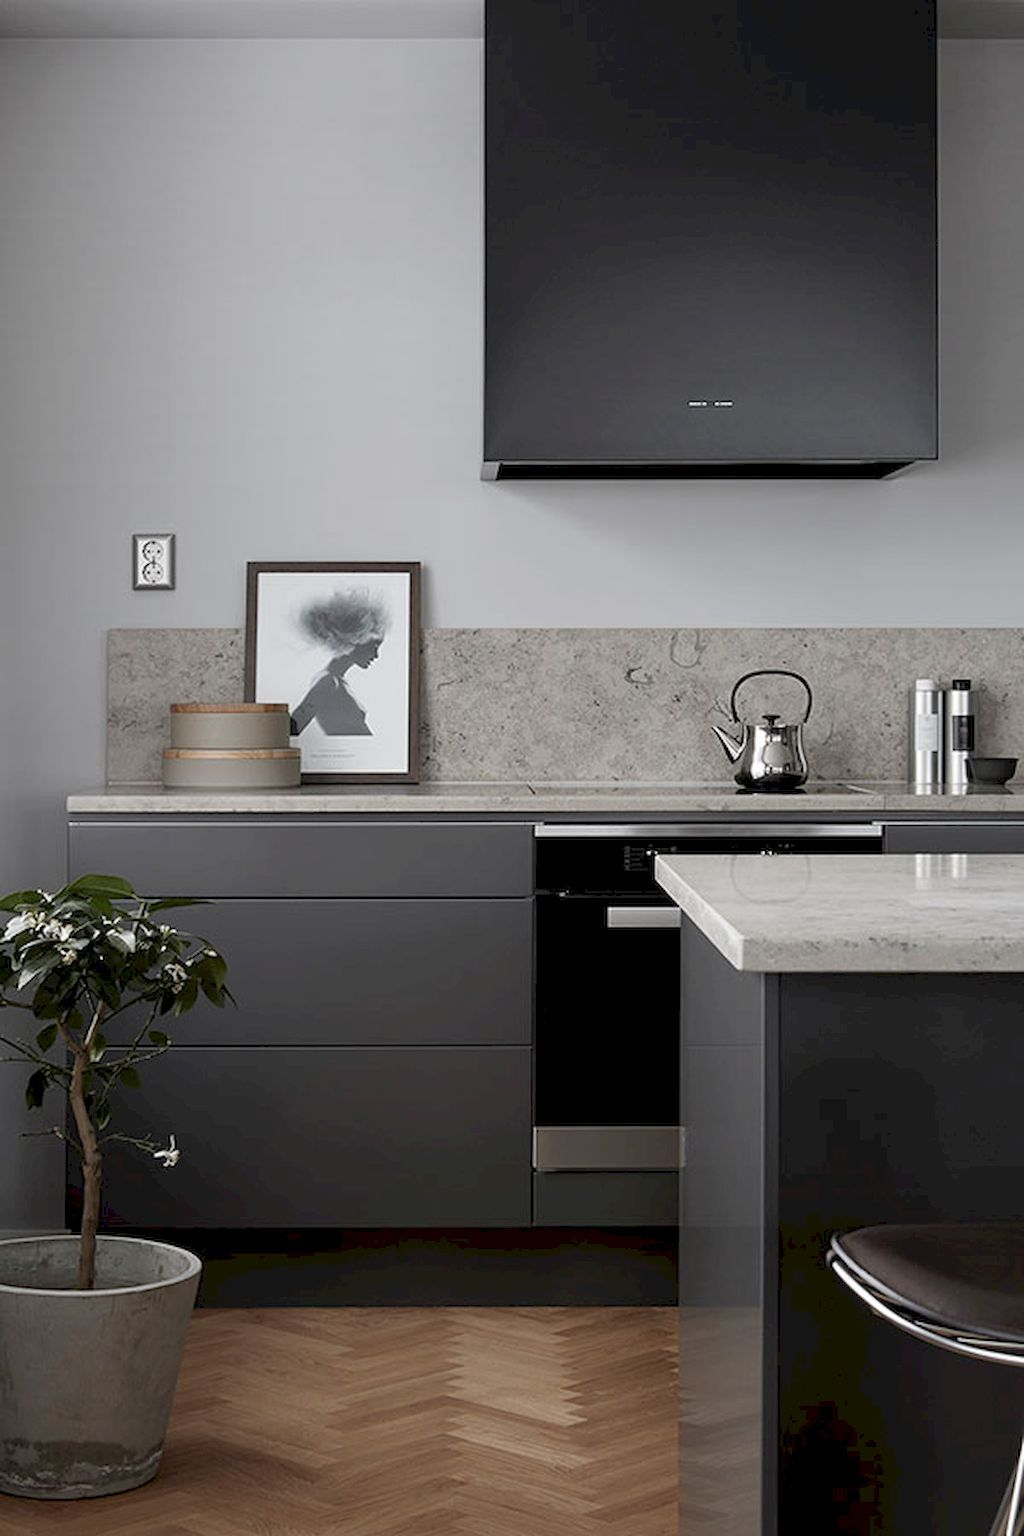 simply apartment kitchen decorating ideas on a budget